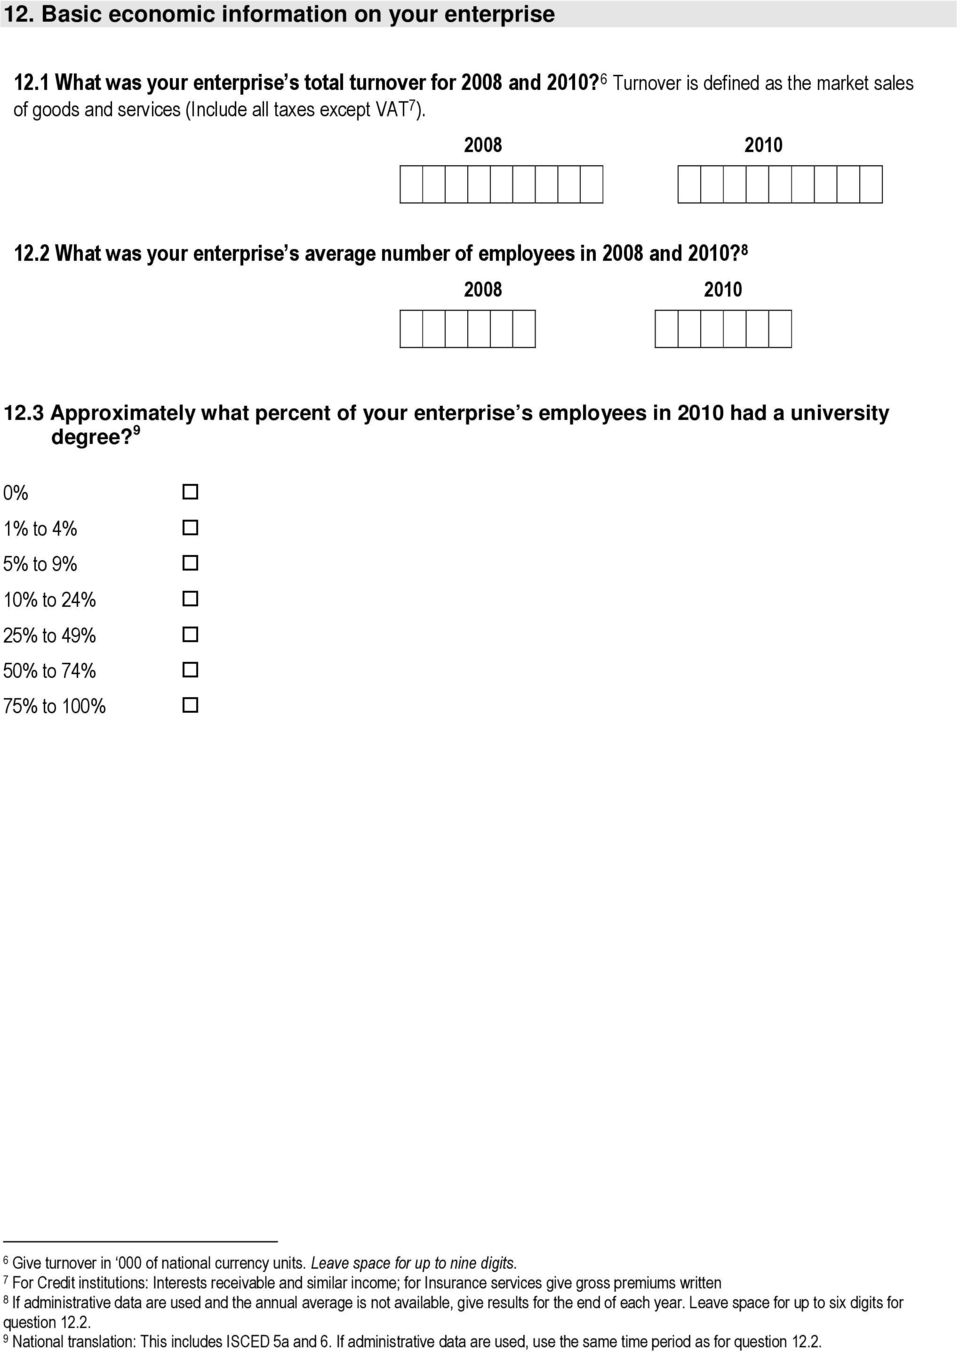 8 2008 2010 12.3 Approximately what percent of your enterprise s employees in 2010 had a university degree?